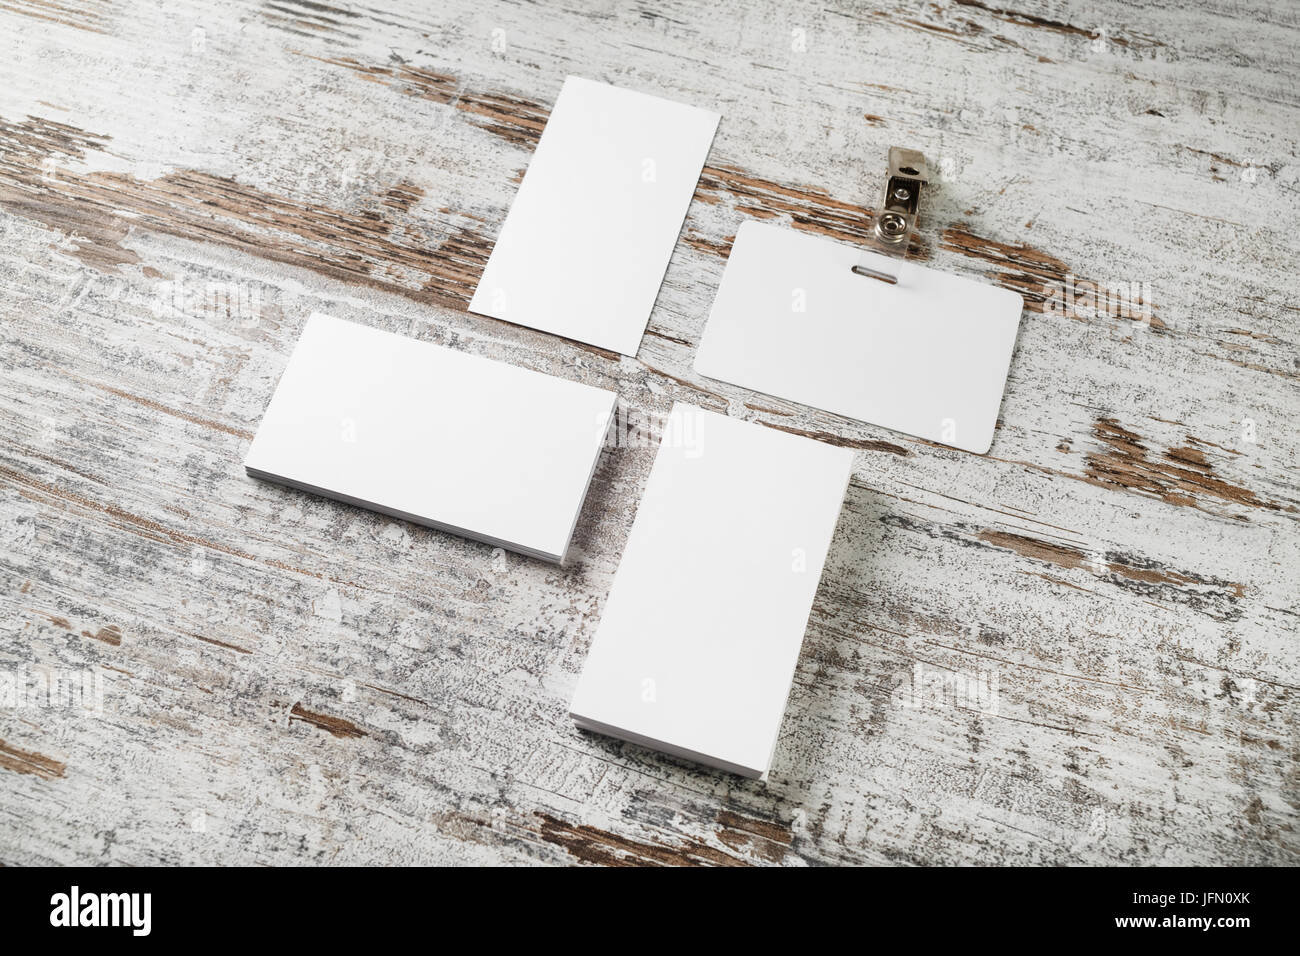 Bank business cards and badge on vintage wood table background ...